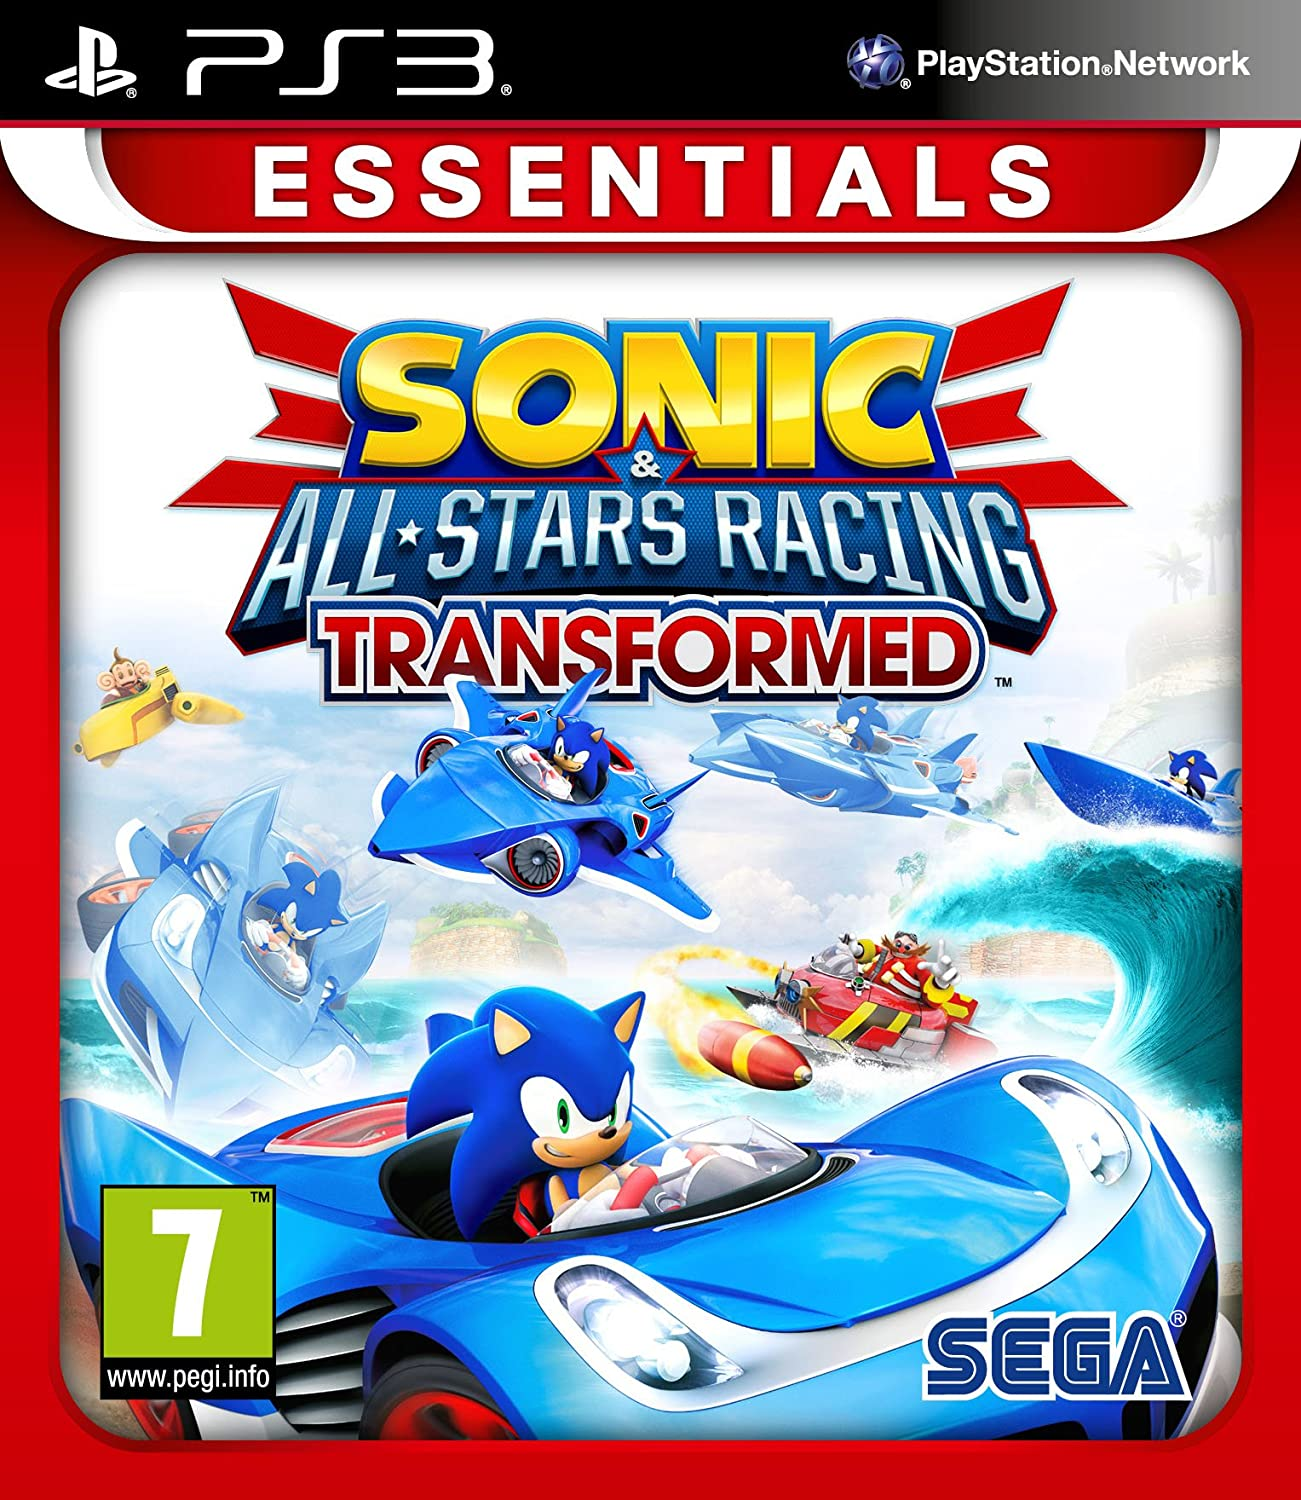 Sonic & All Stars Racing Transformed: Essentials